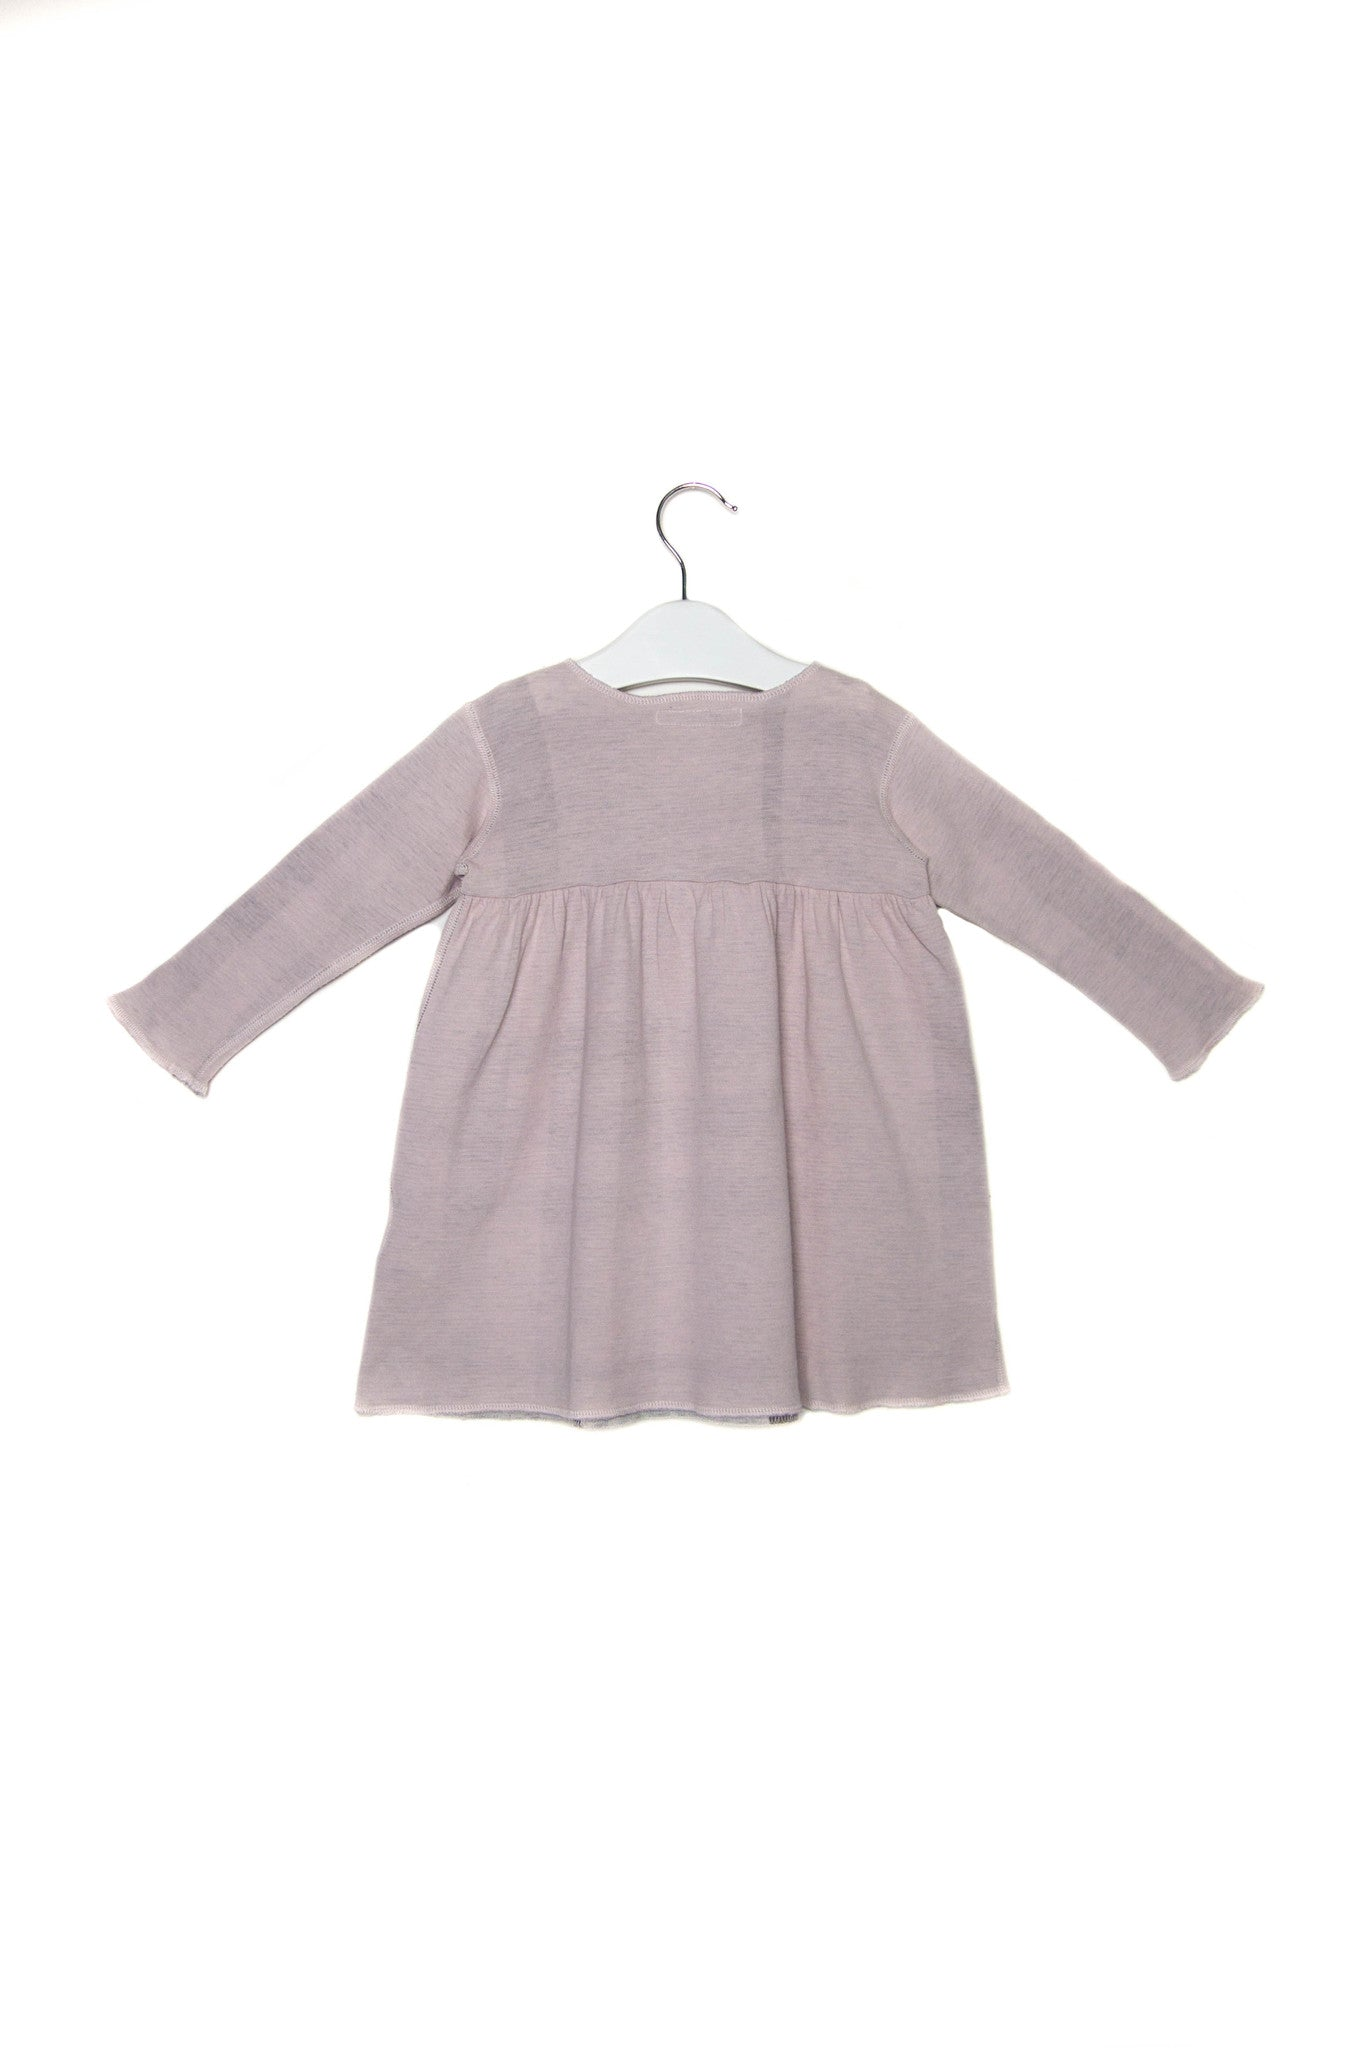 10002227 Burberry Baby~Dress and Bloomer 12M at Retykle